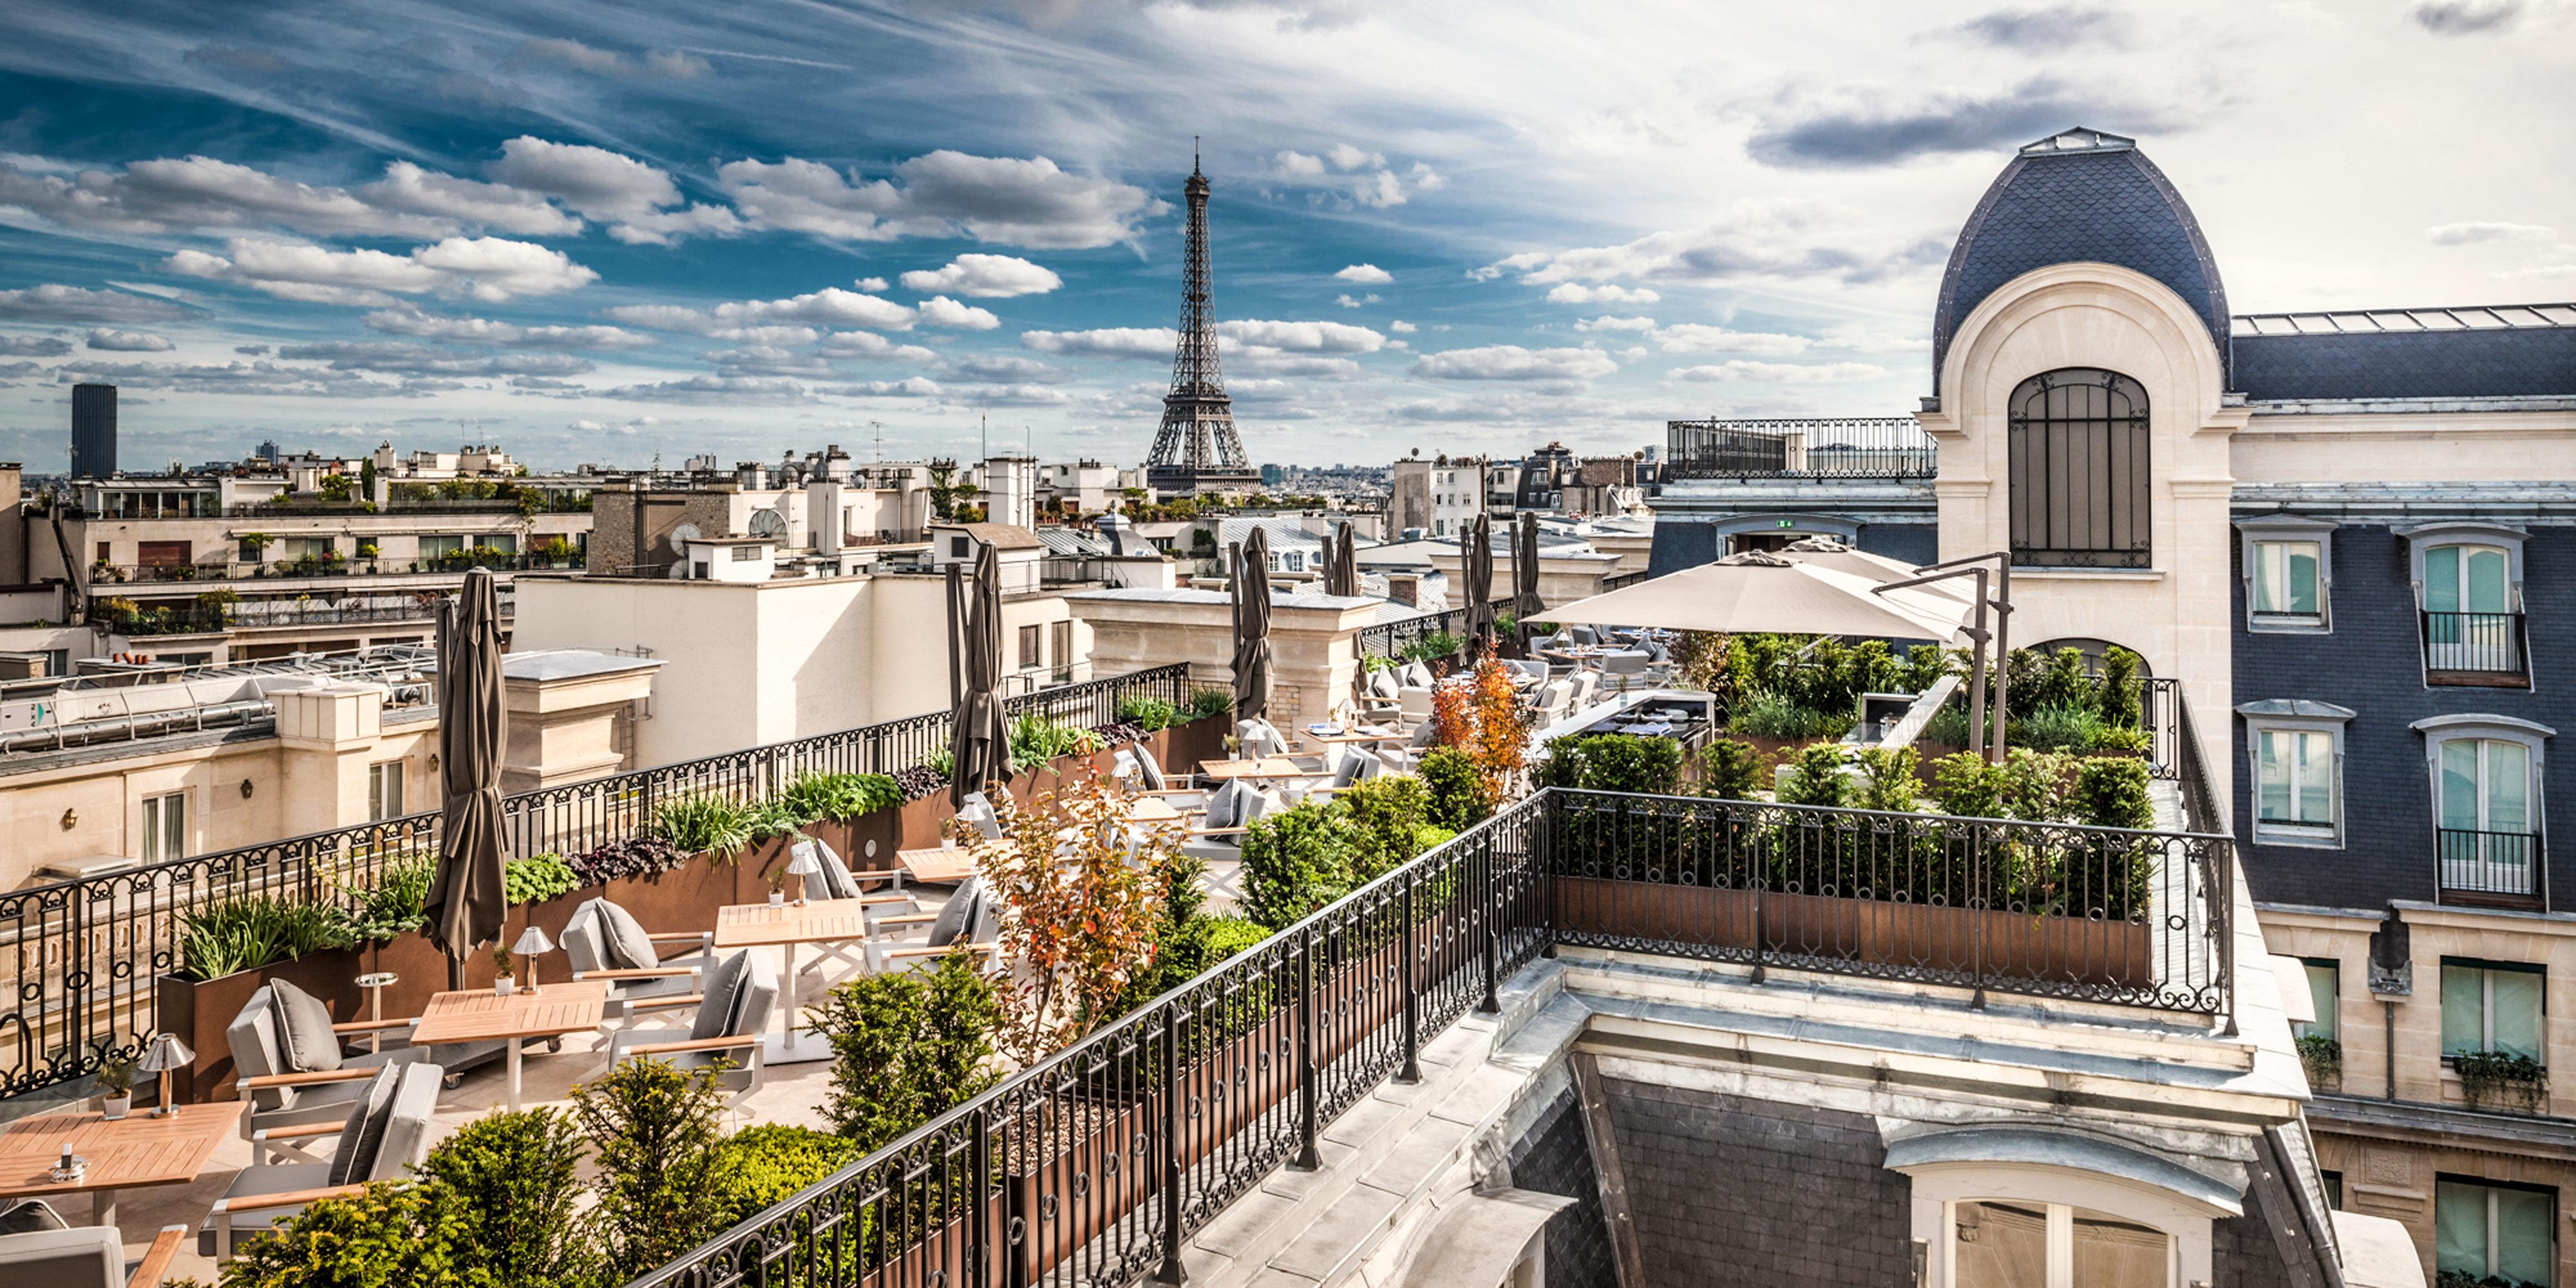 Why You Should Travel to Paris Now